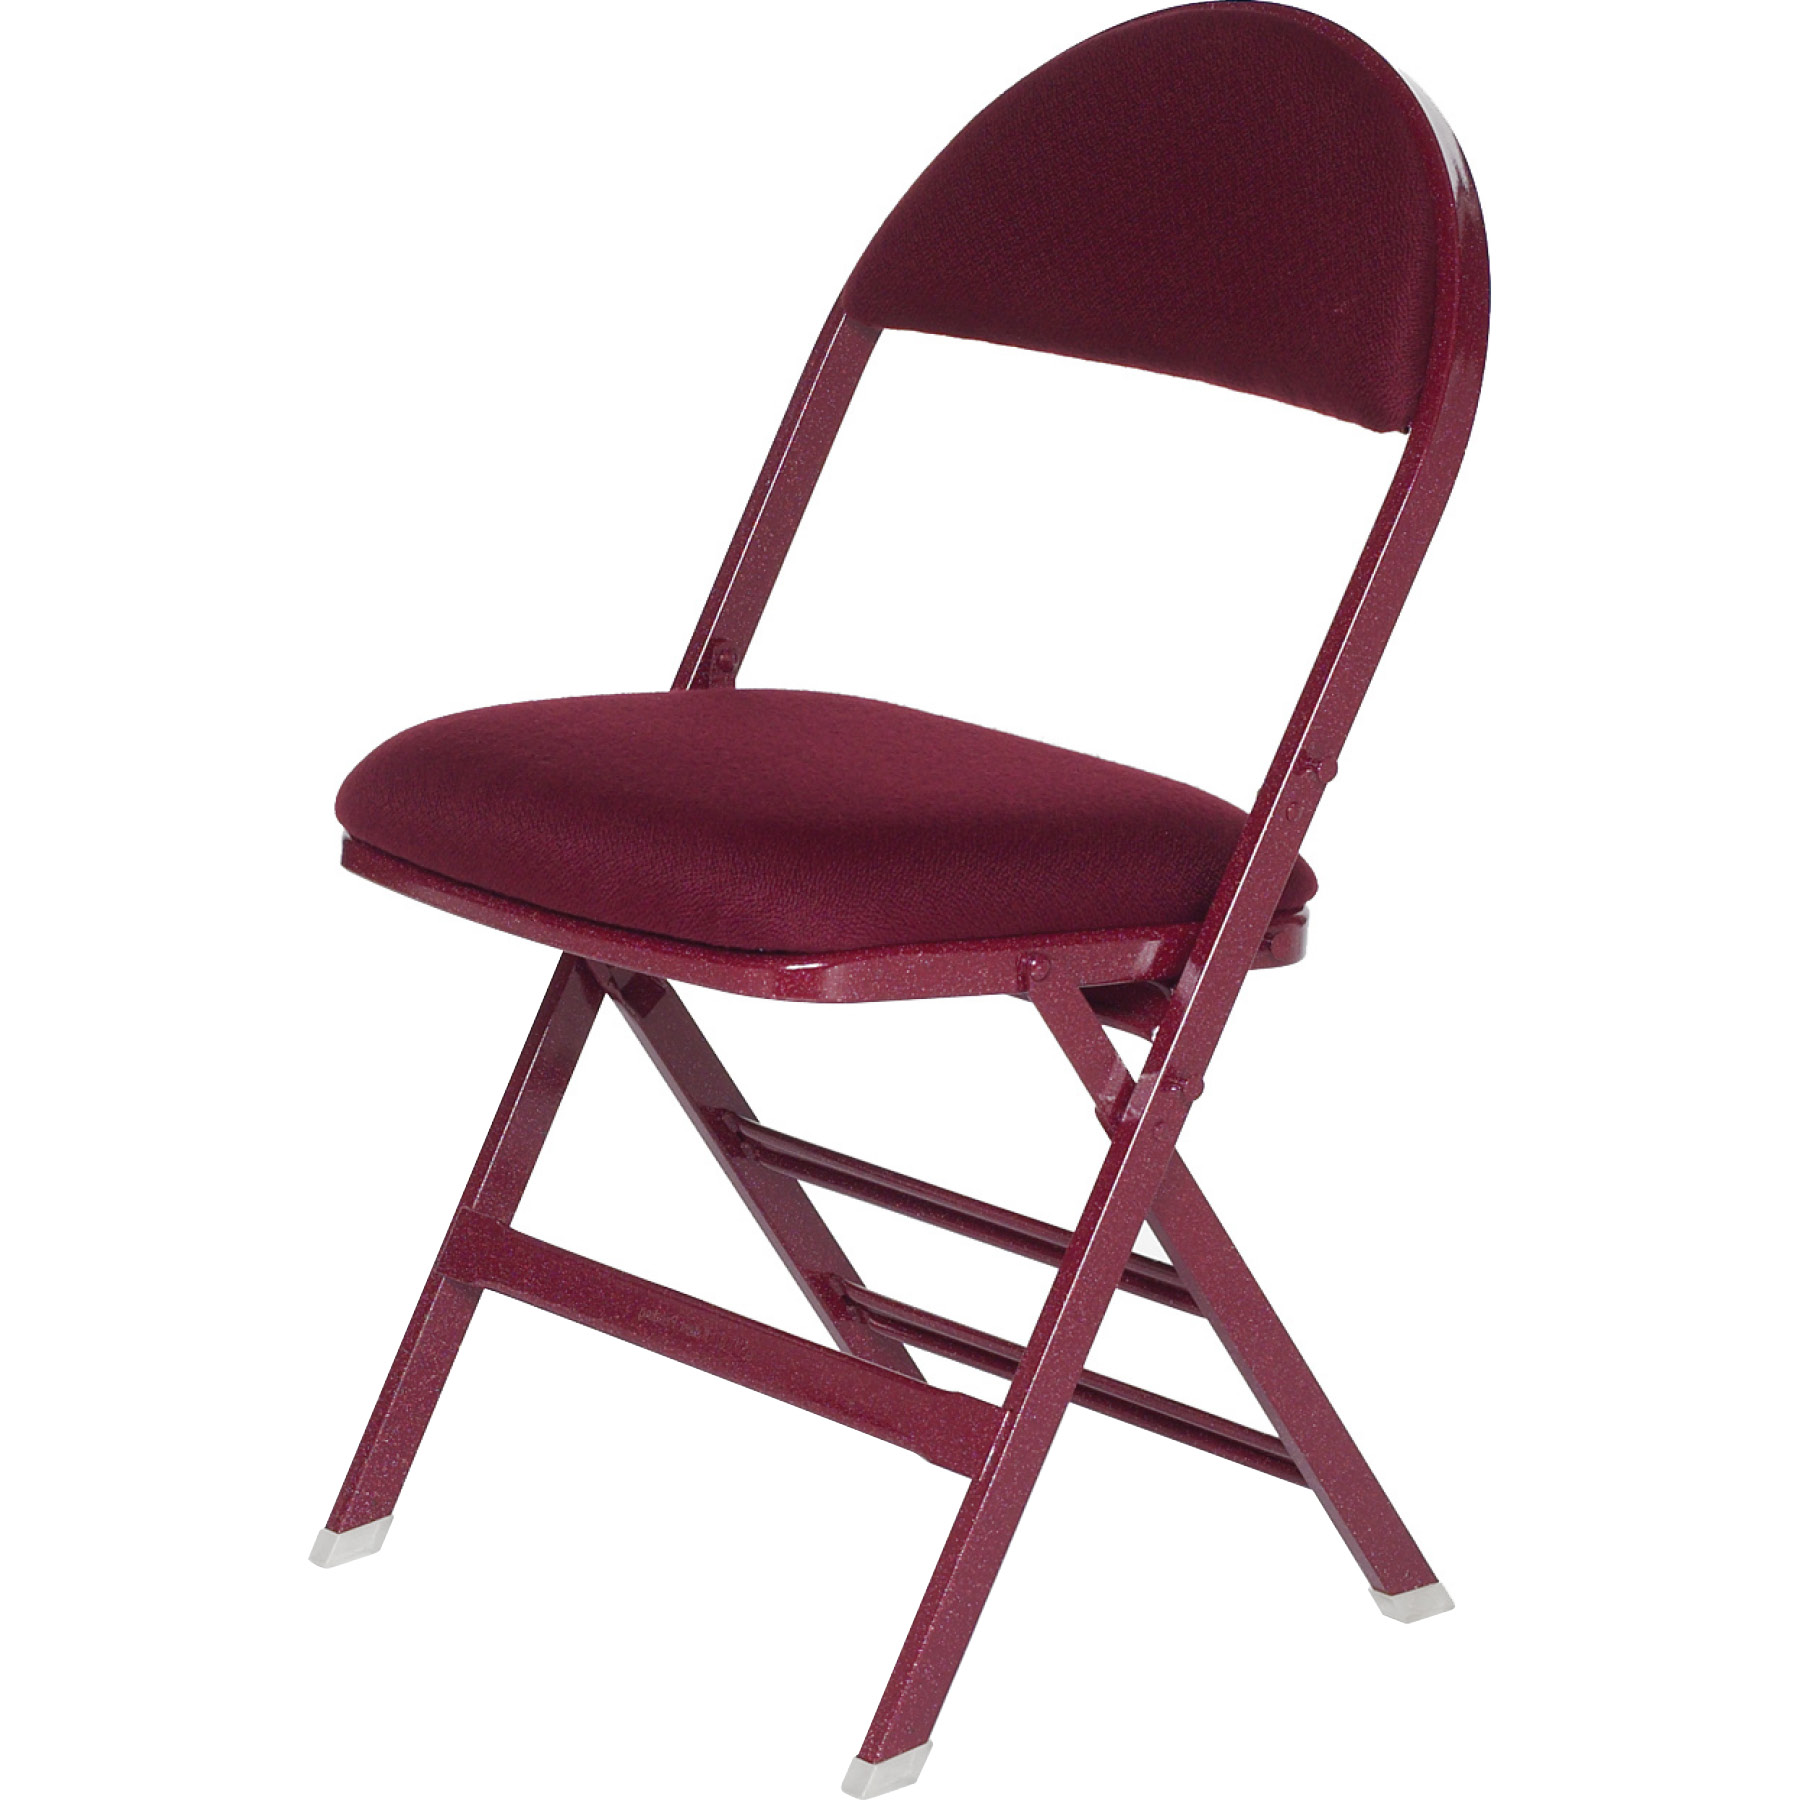 Pleasant 4237 Folding Chair Columbia Manufacturing Inc Unemploymentrelief Wooden Chair Designs For Living Room Unemploymentrelieforg